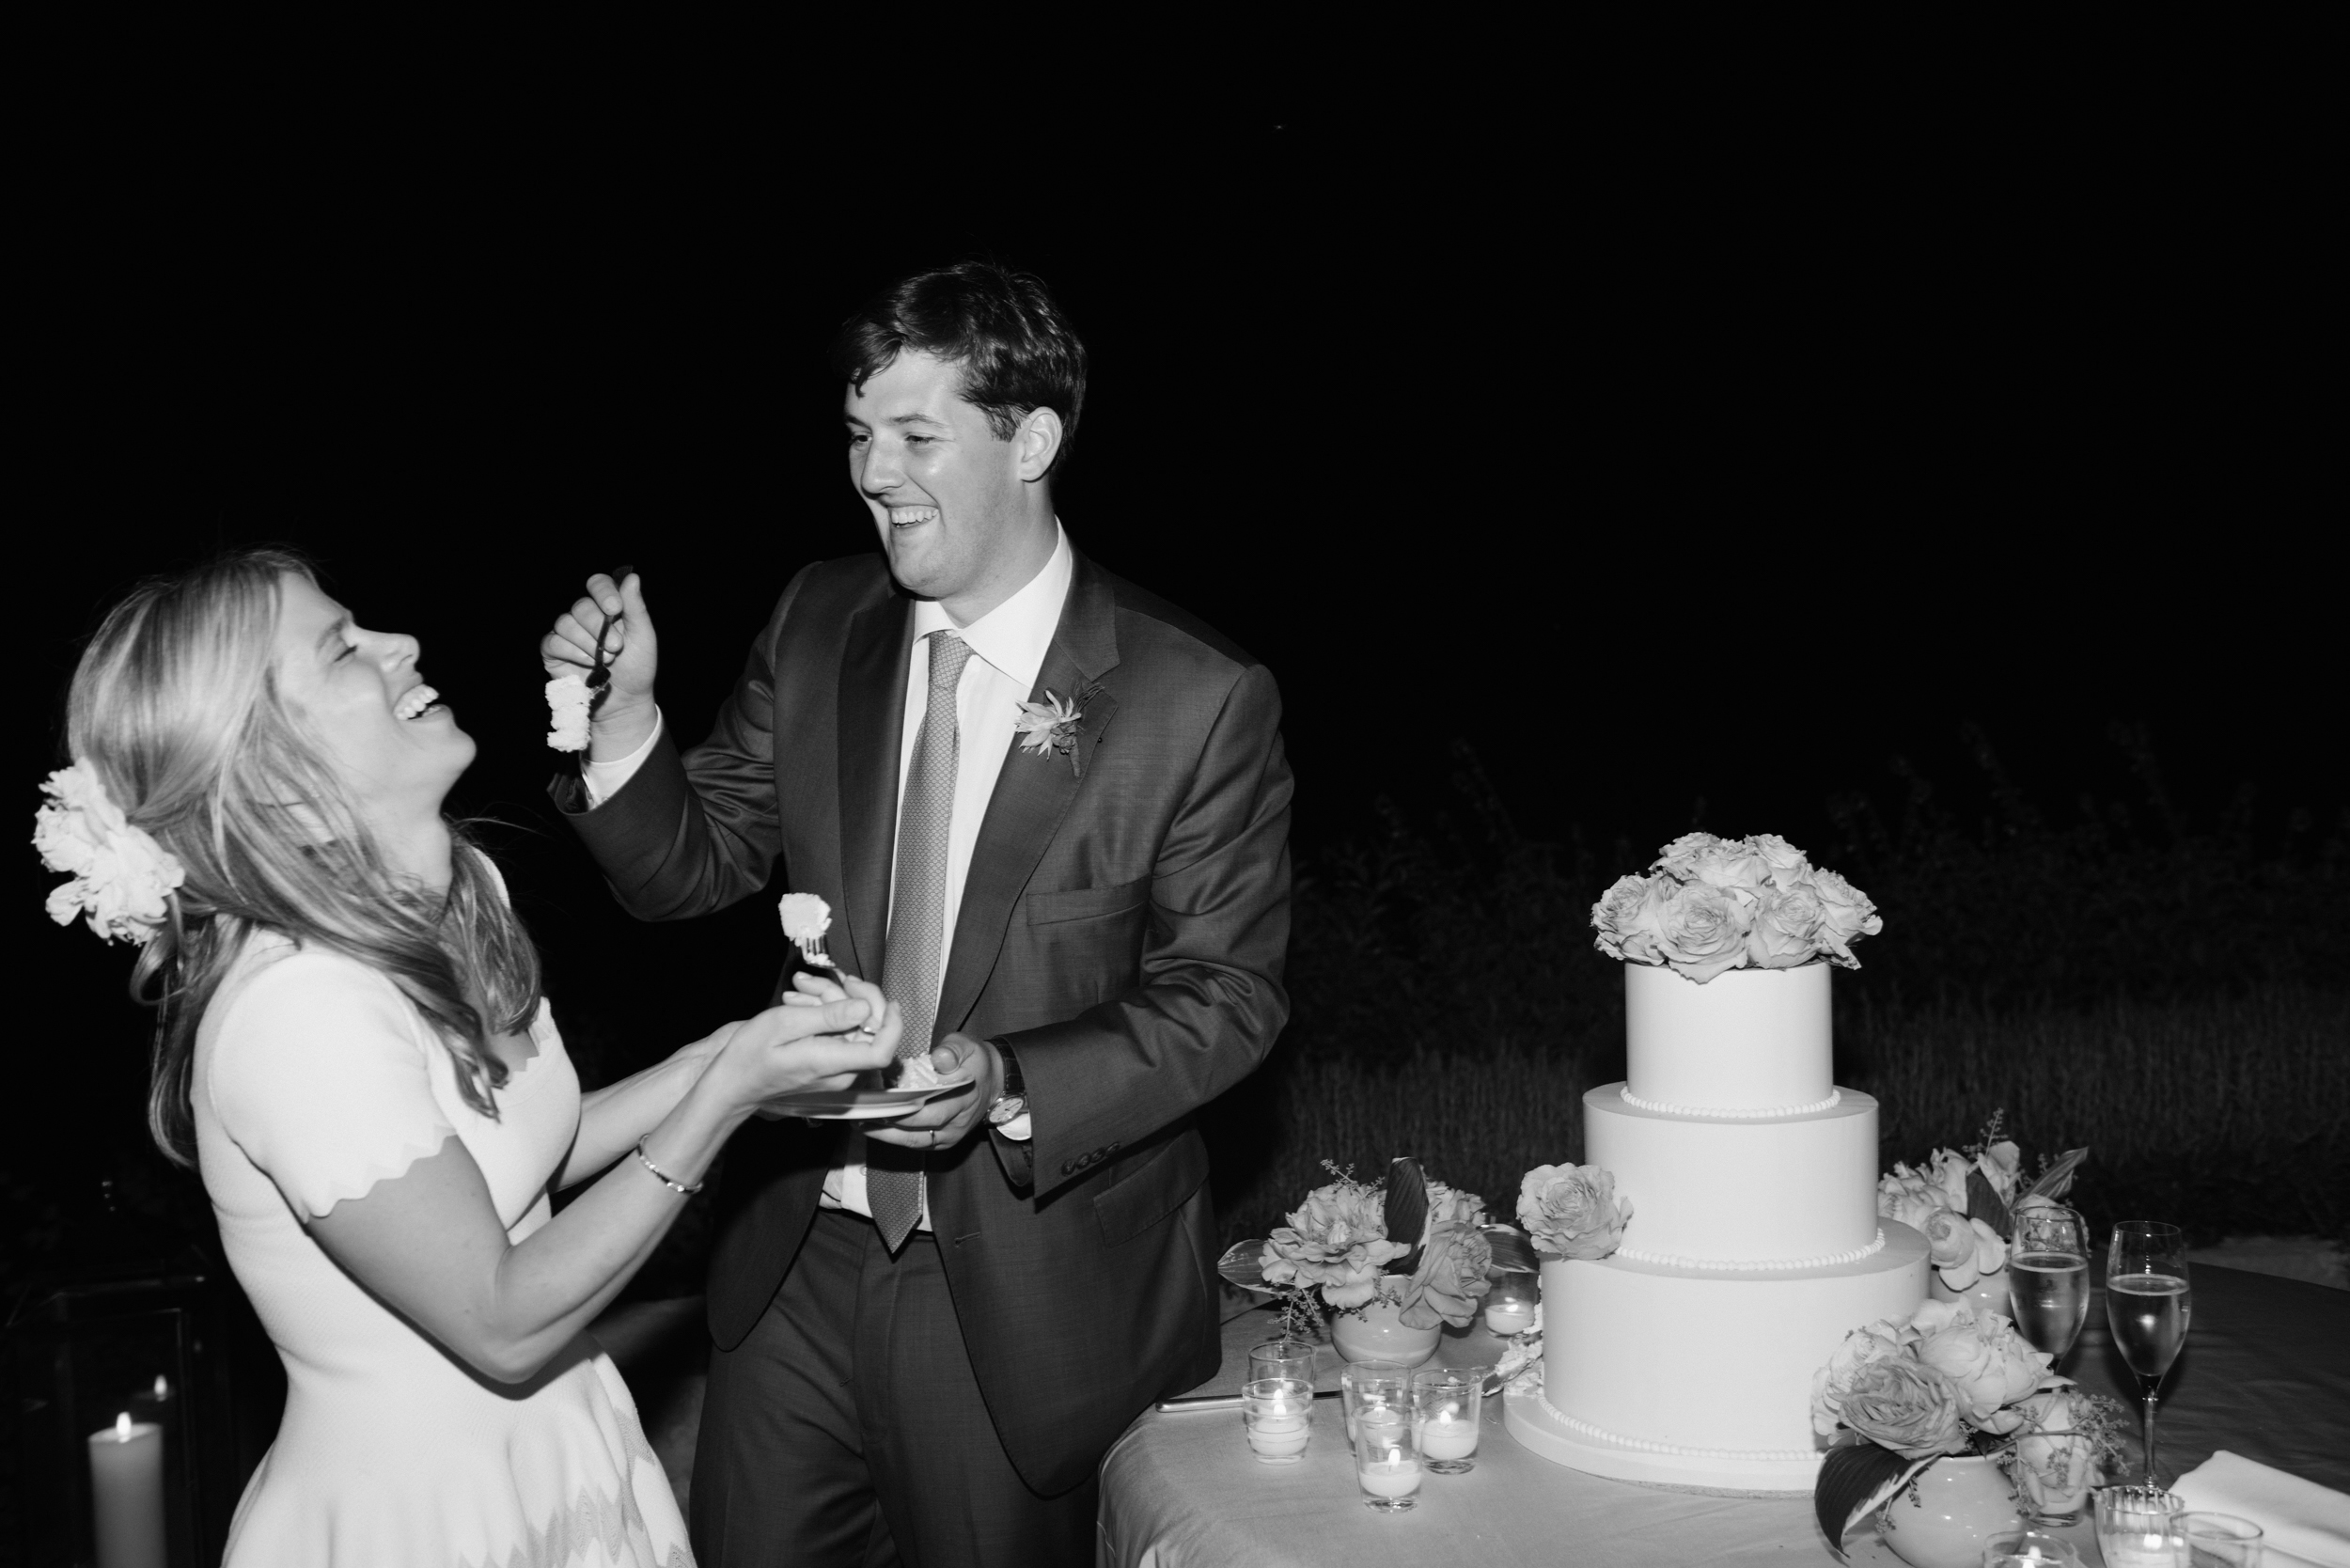 Sarah and James share a sweet,silly moment over cake cutting; photo by Sylvie Gil